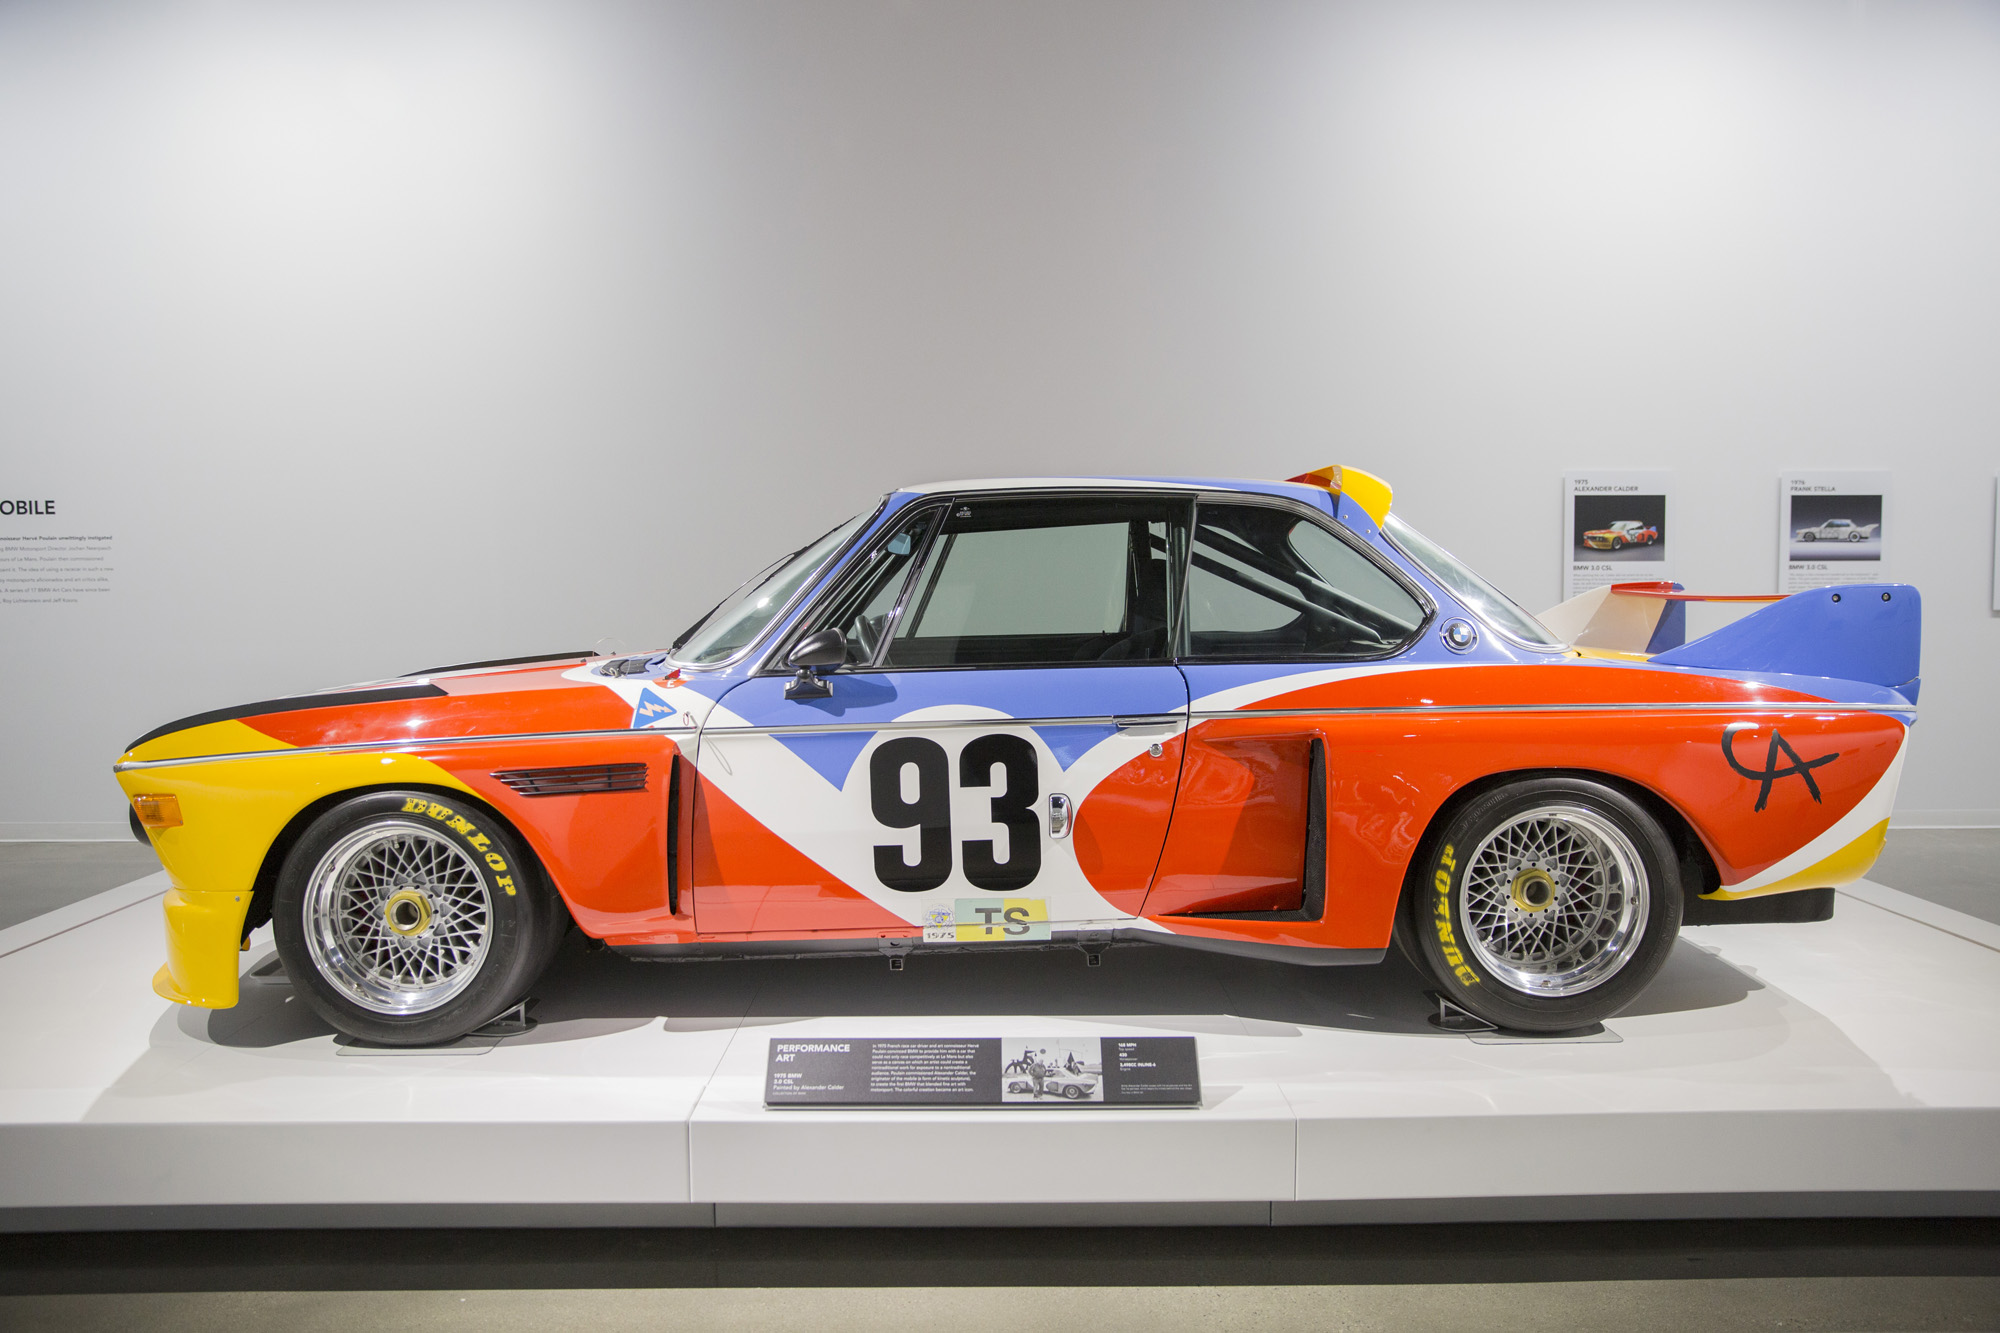 BMW Art Cars - The Fastest Art on Earth